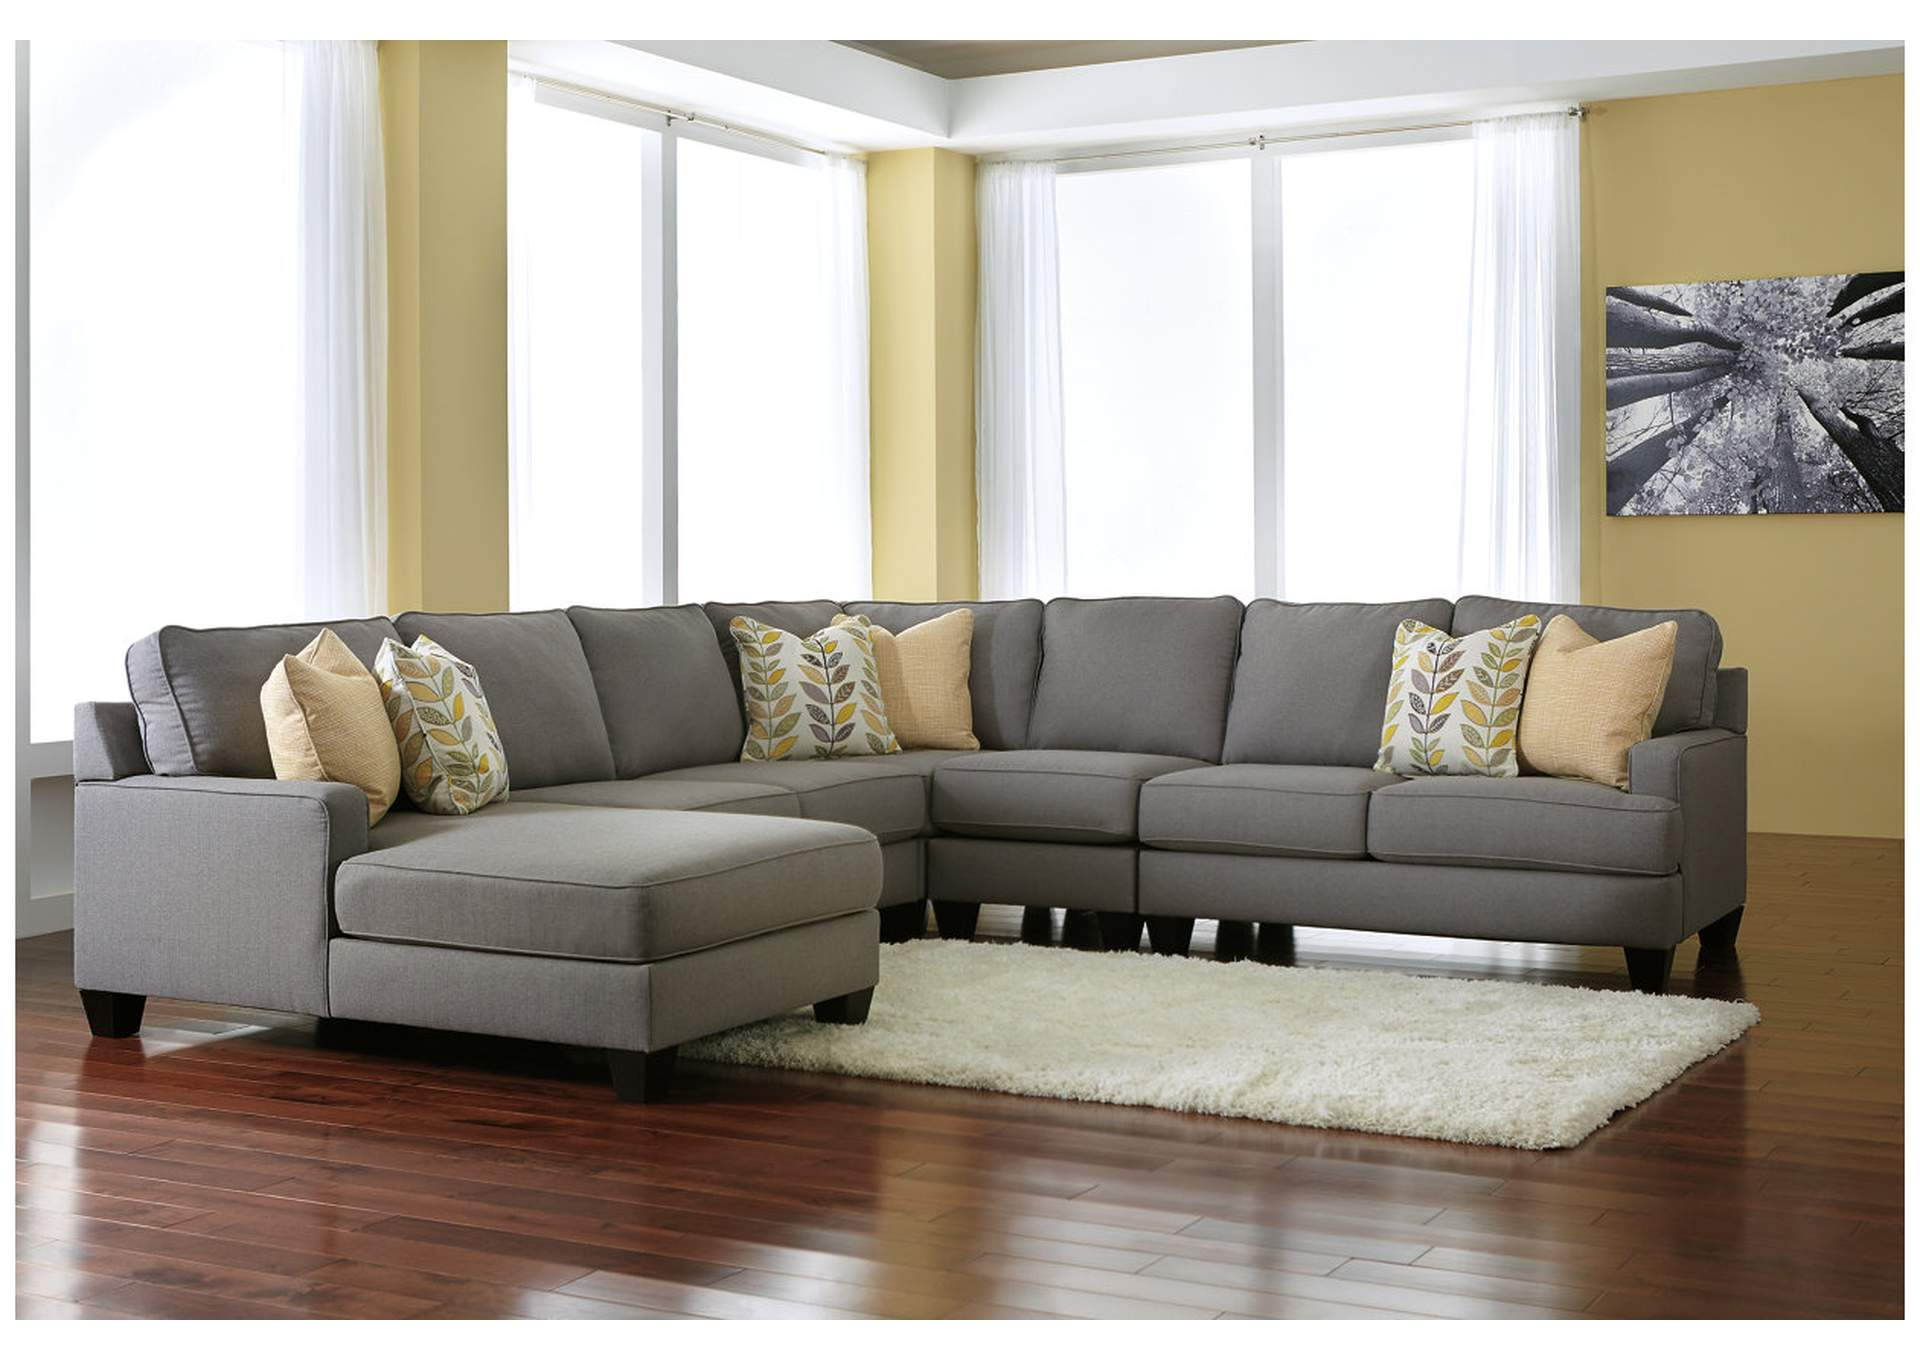 Chamberly Alloy LAF Chaise Extended Sectional,Signature Design By Ashley